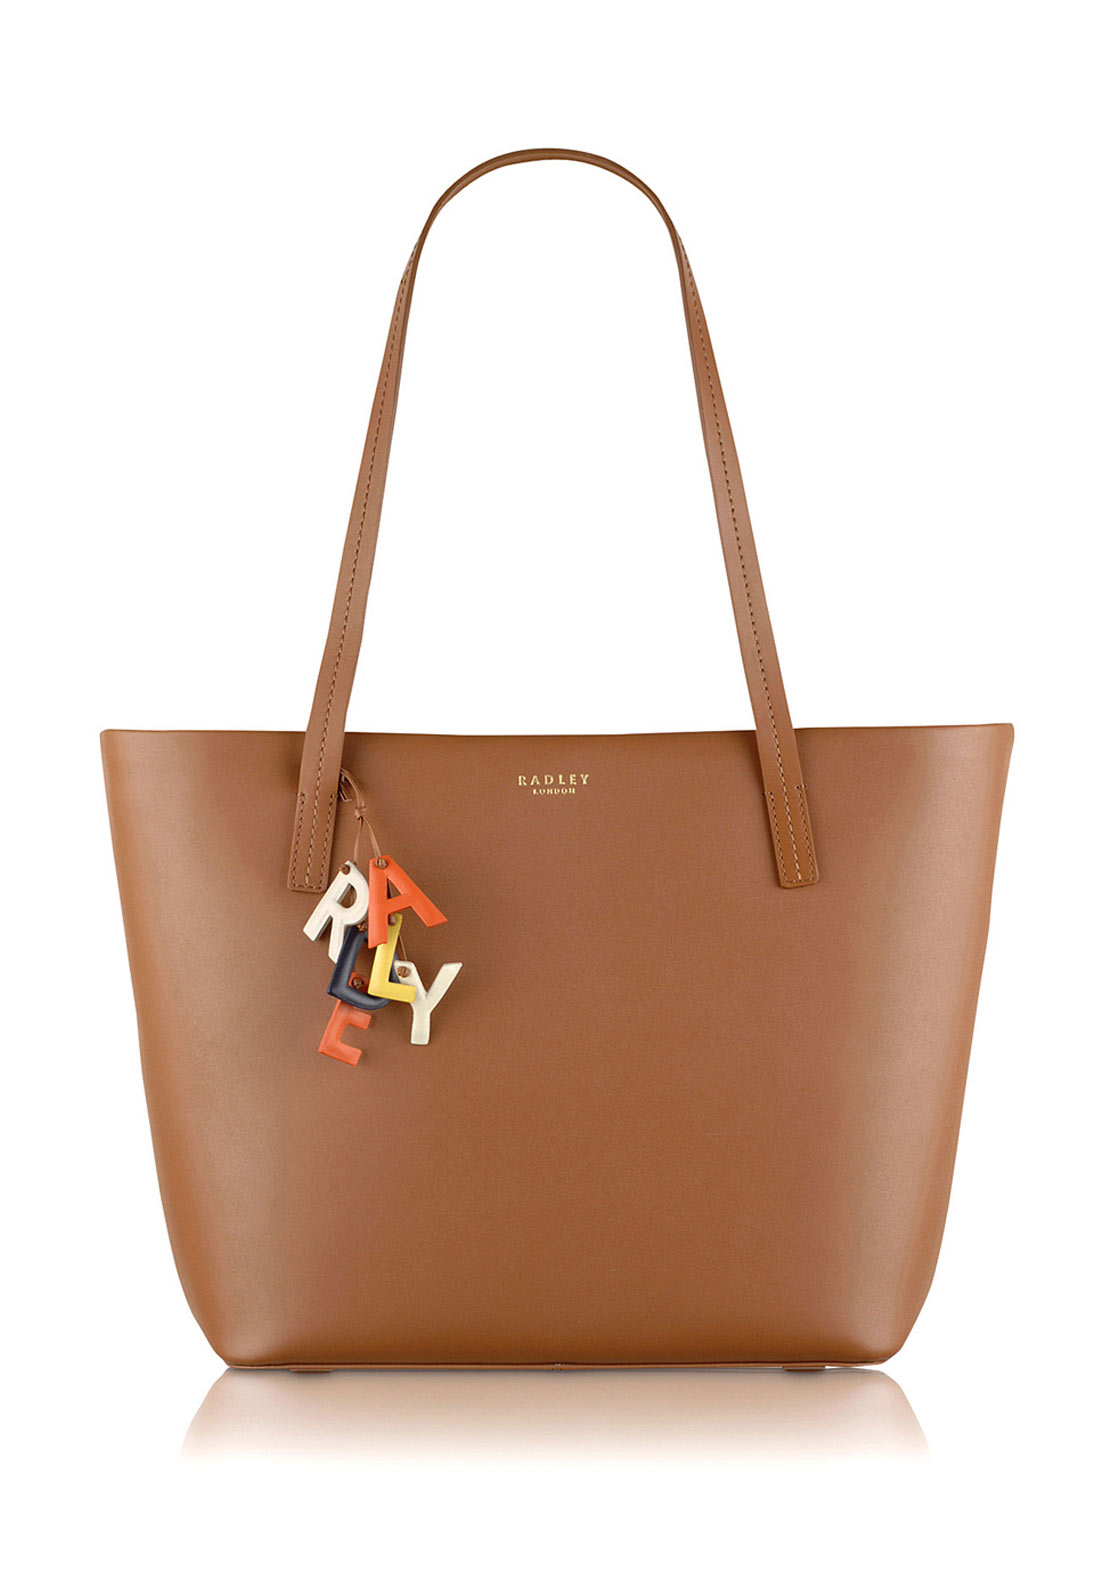 Radley Large Zip Top Tote Bag, Tan